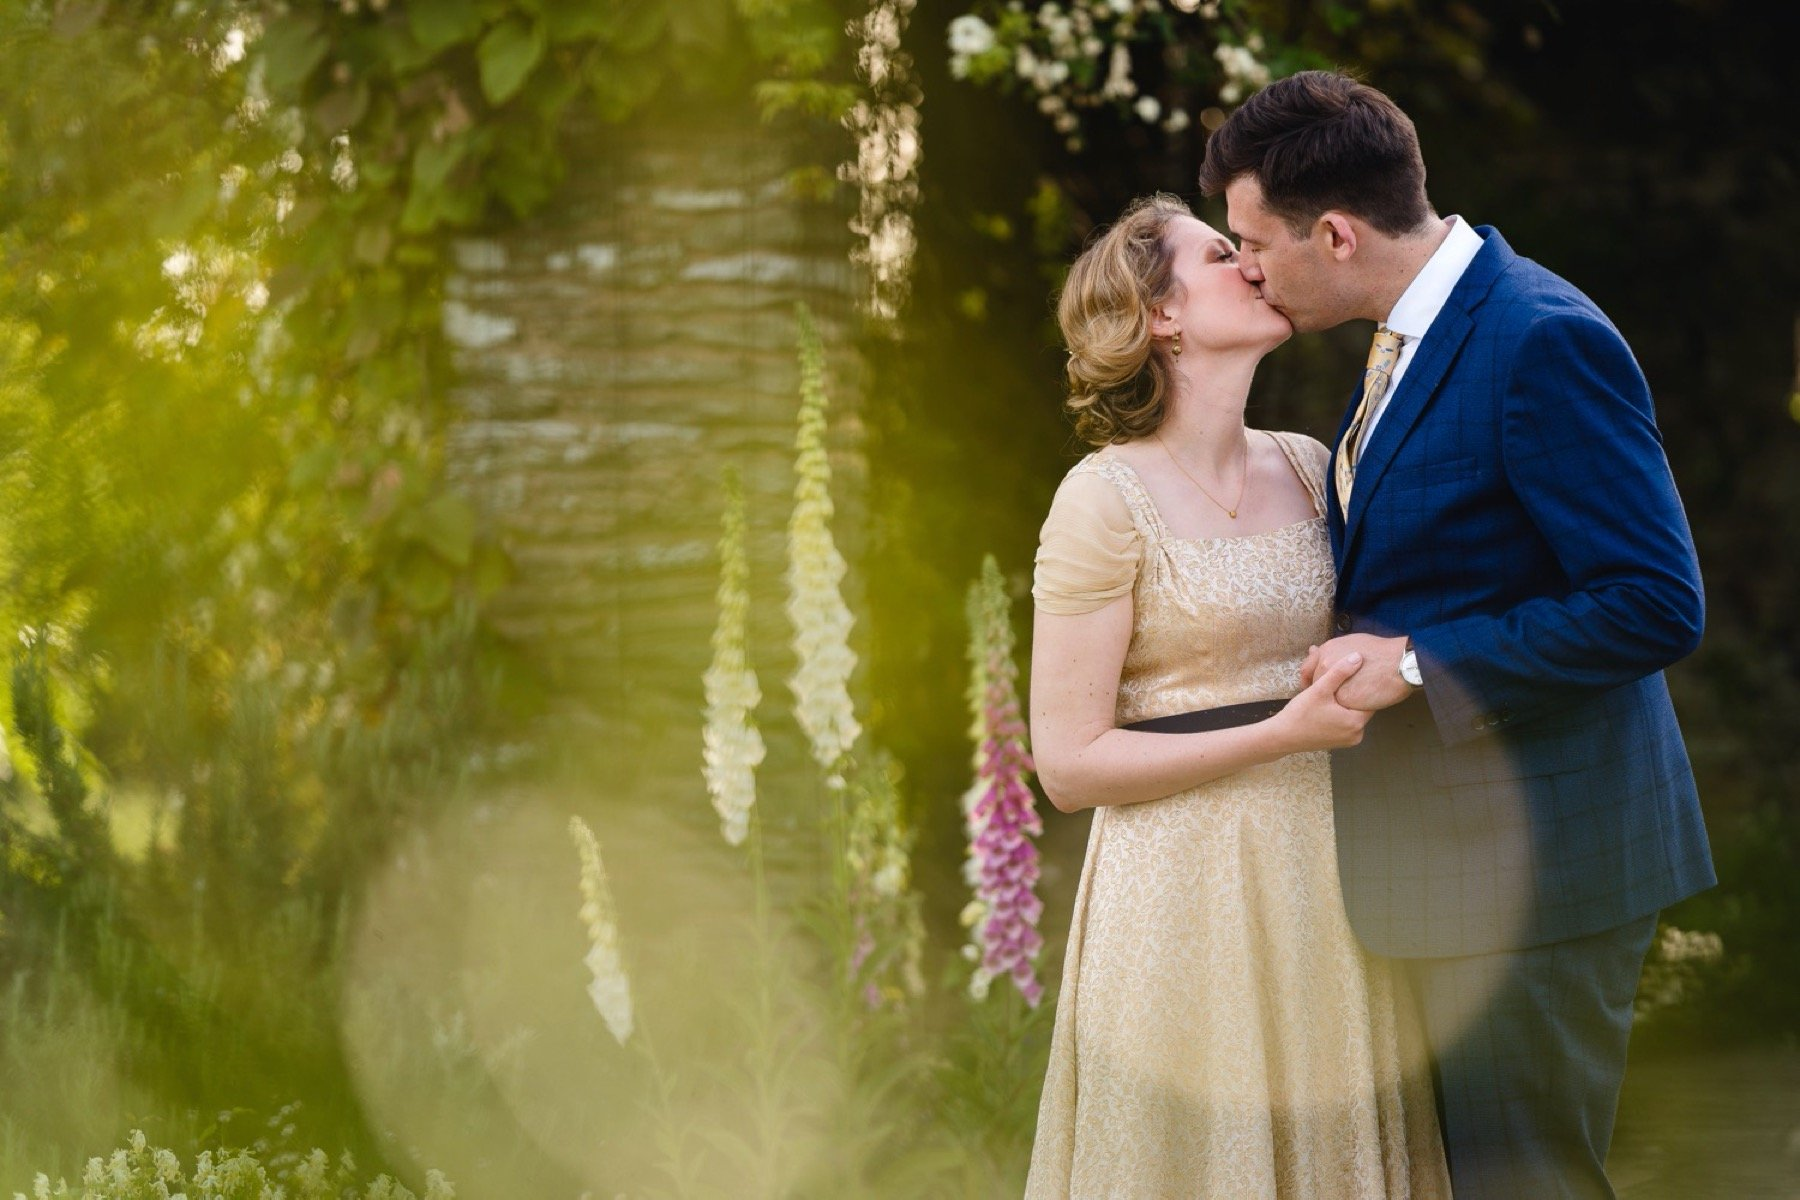 A Hestercombe Gardens Wedding